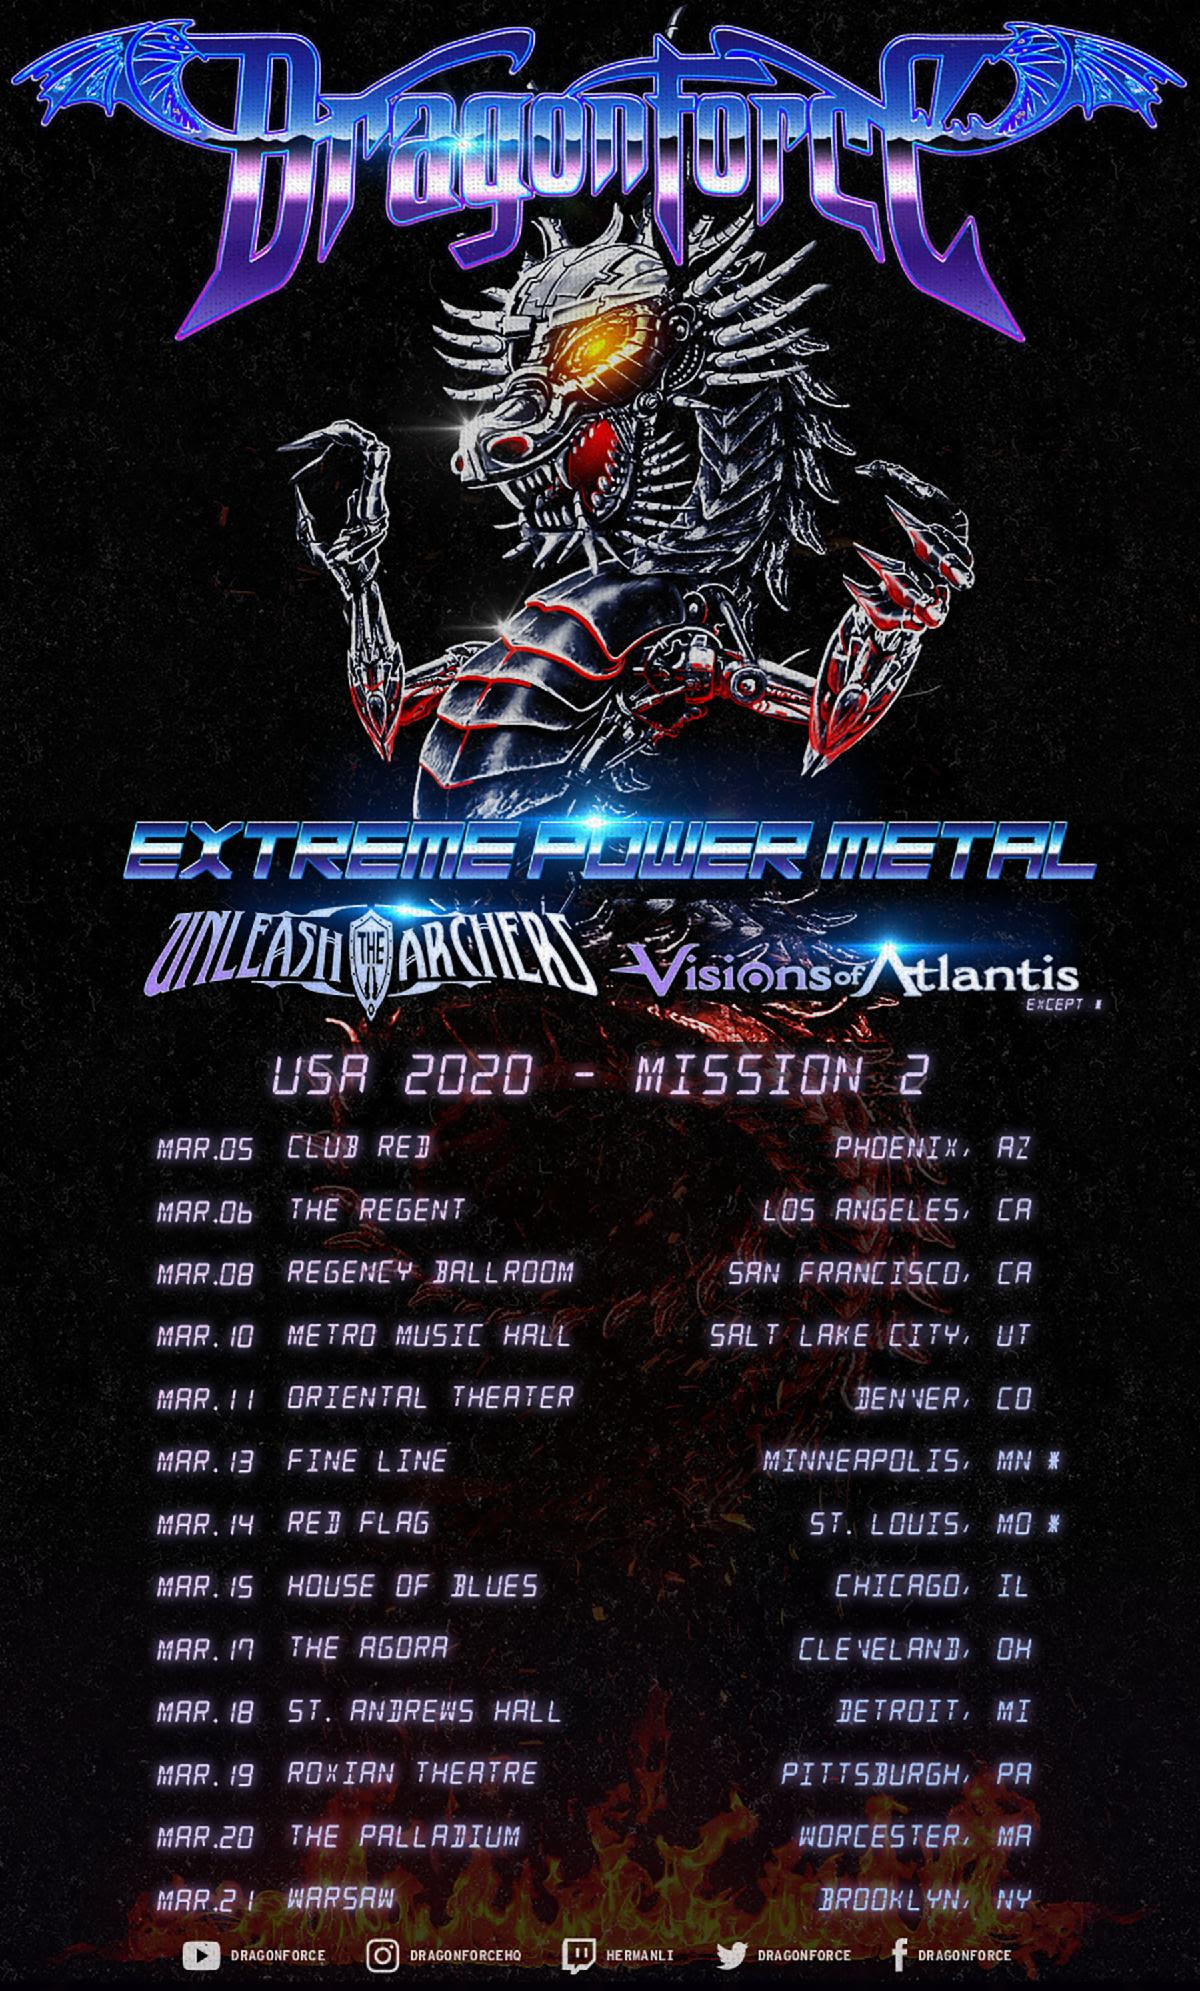 Dragonforce Announces U.S. Tour With Unleash The Archers & Visions Of Atlantis